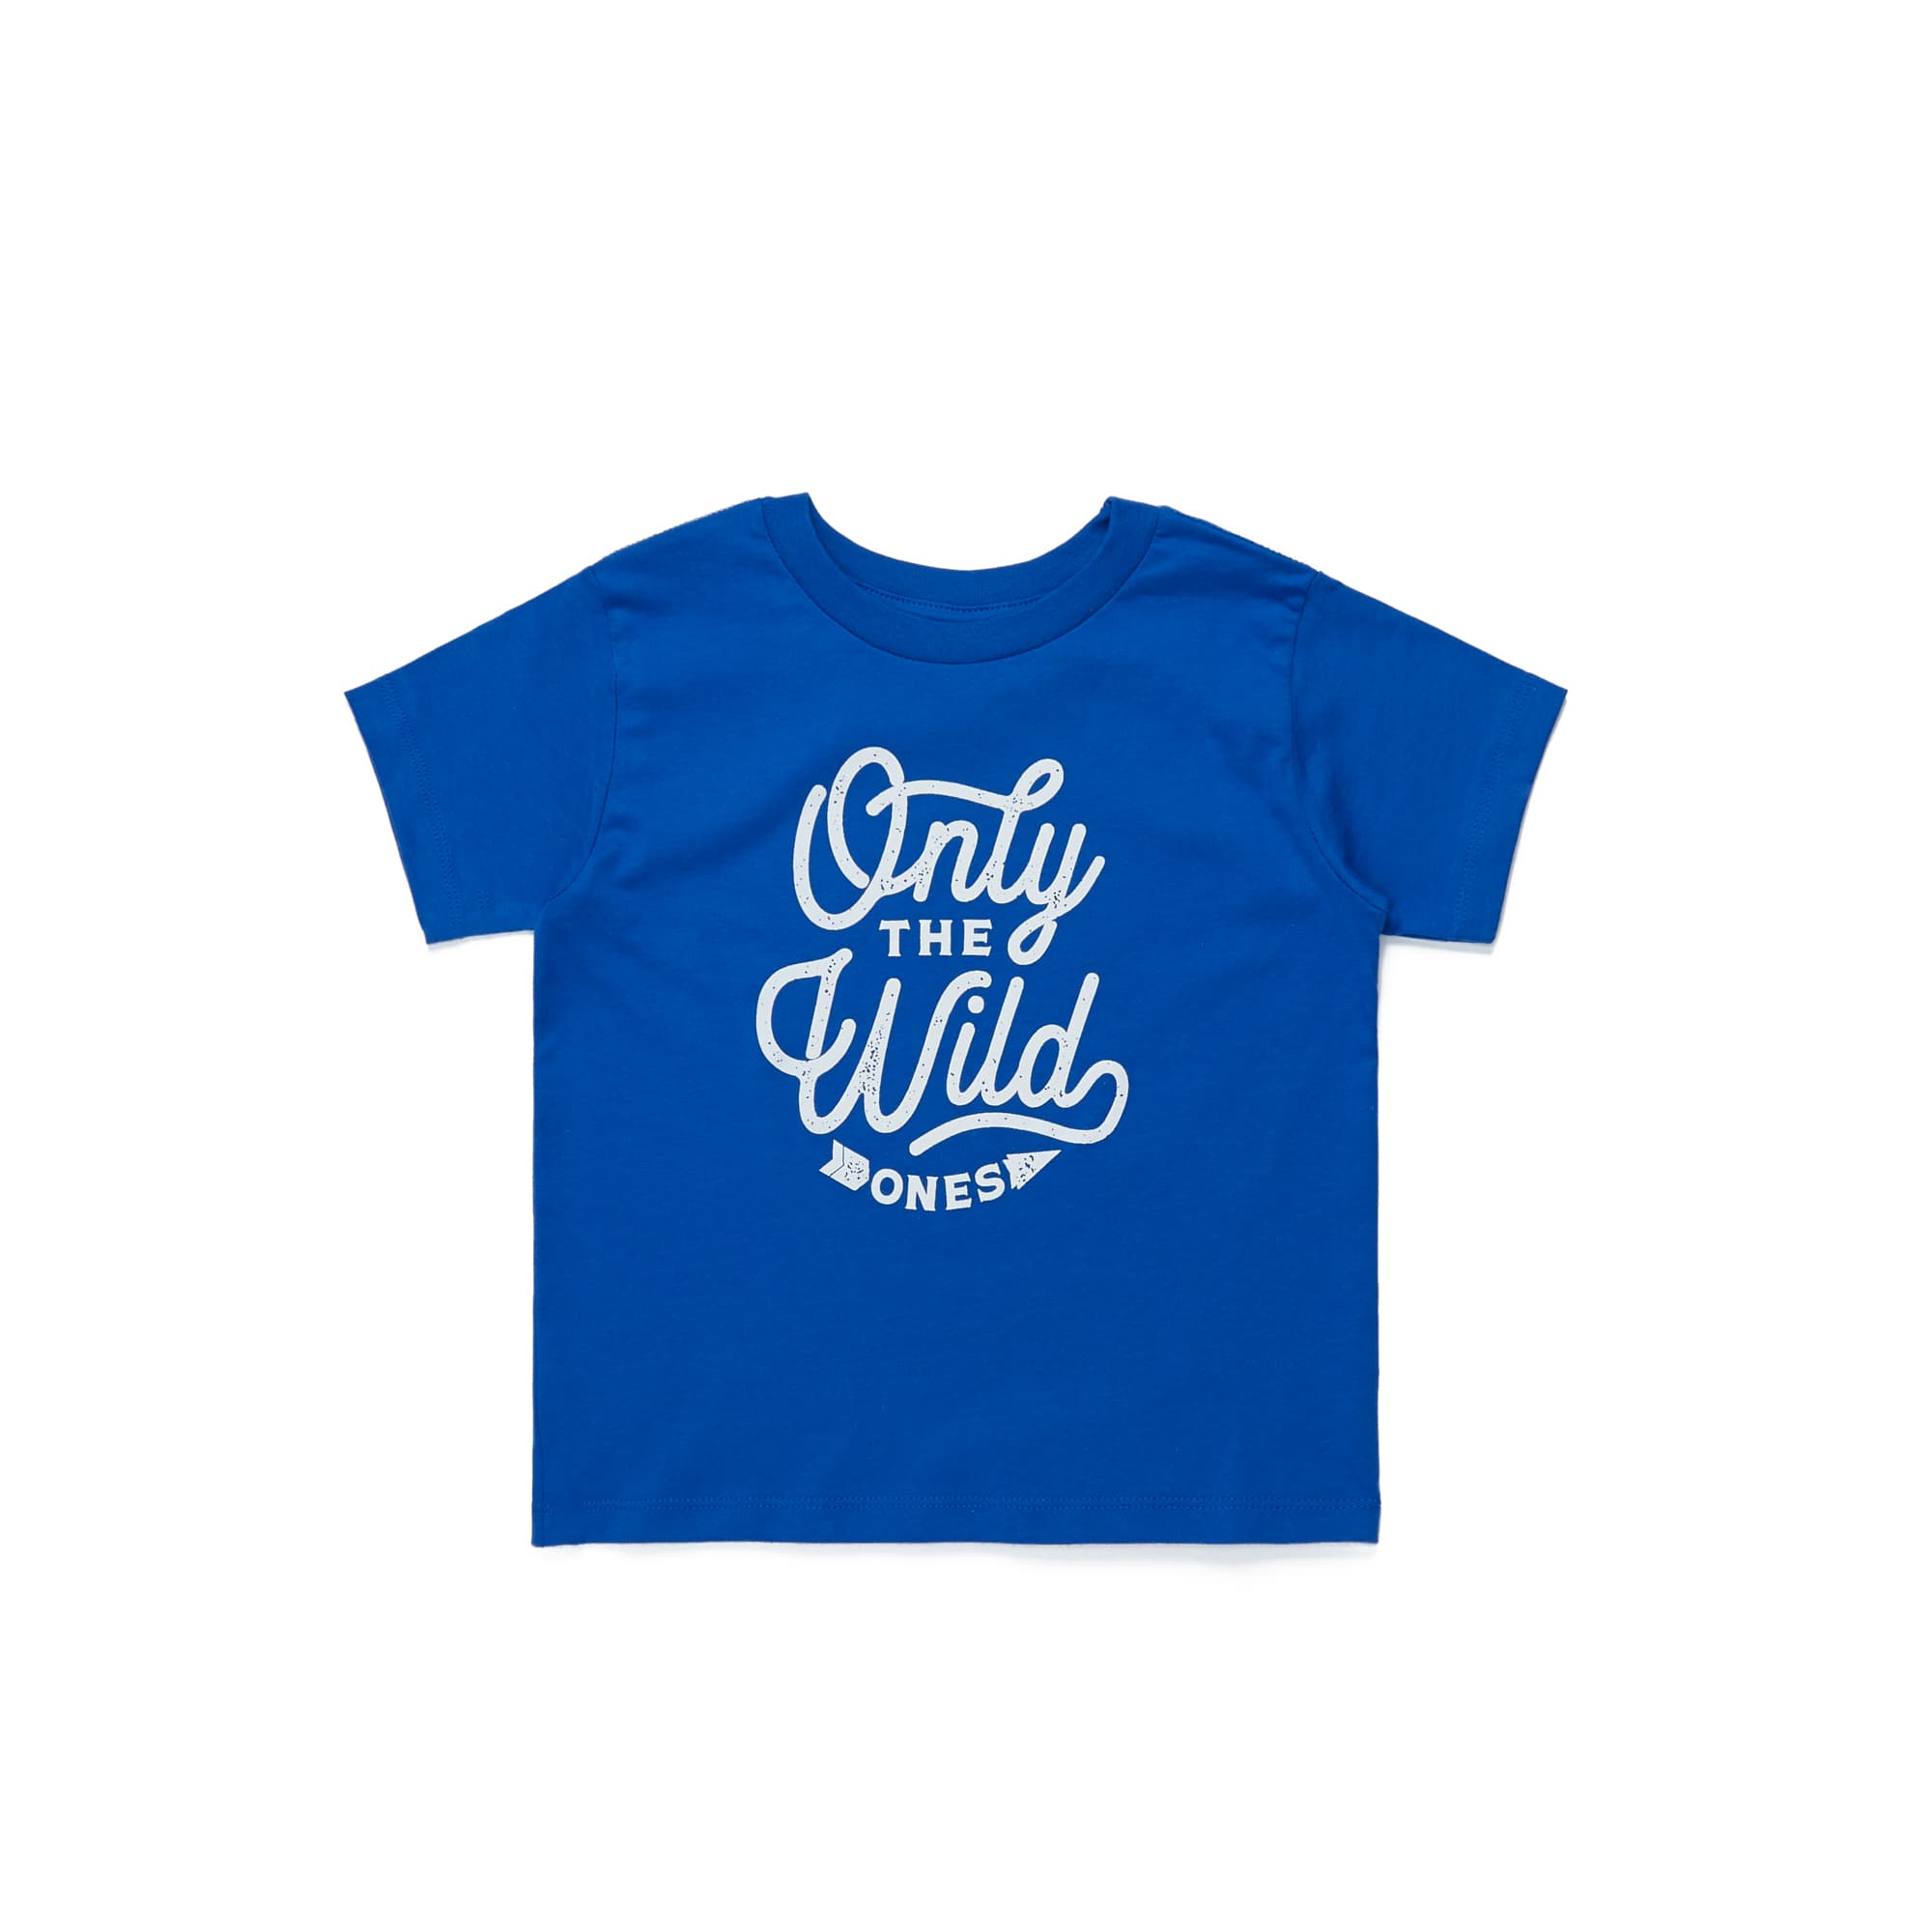 'Wild Ones' Toddler T-Shirt